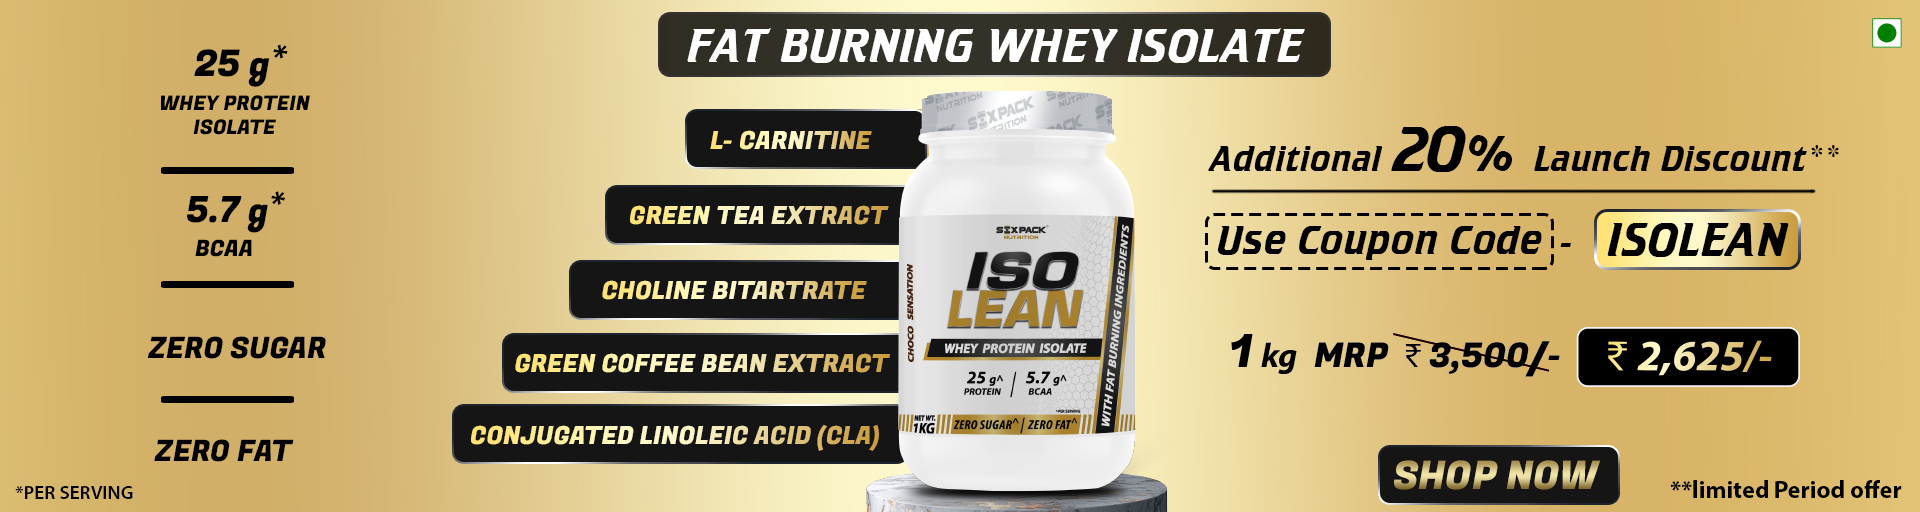 Iso-Lean-Launch-Offer-Banner-2